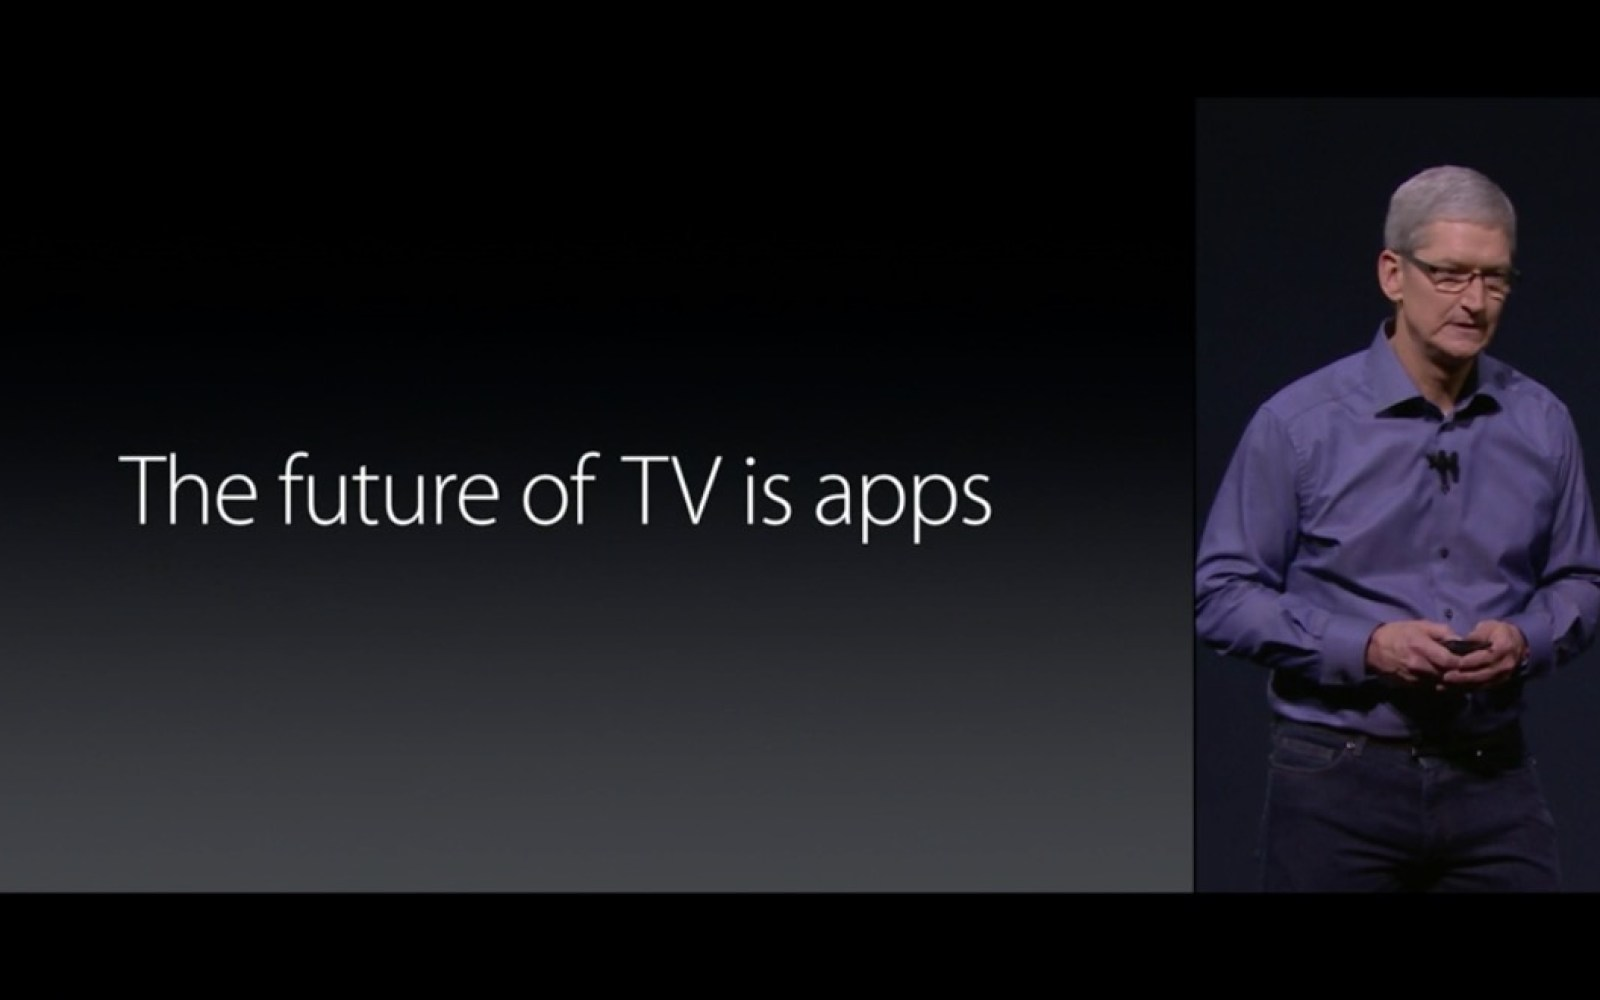 Feature Request: Apple TV 4 needs a way to watch TV shows from multiple sources in one universal app